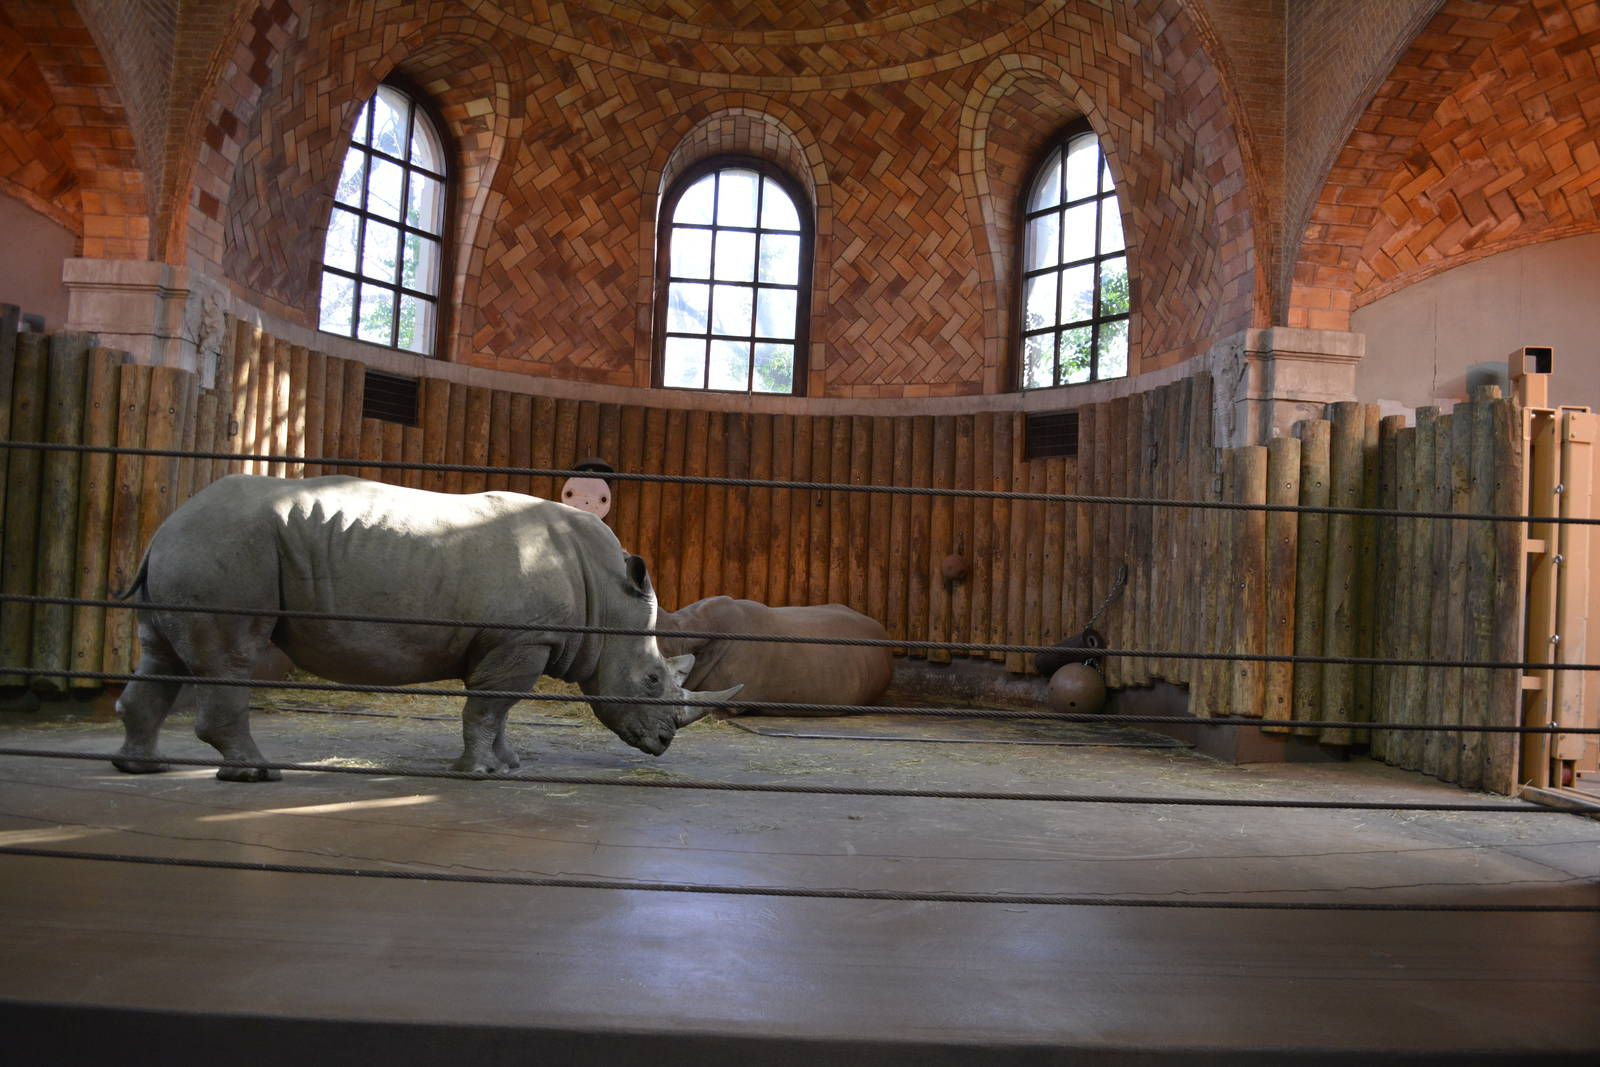 Bronx Zoo Indian Rhino Exhibit Zoochat - Year of Clean Water